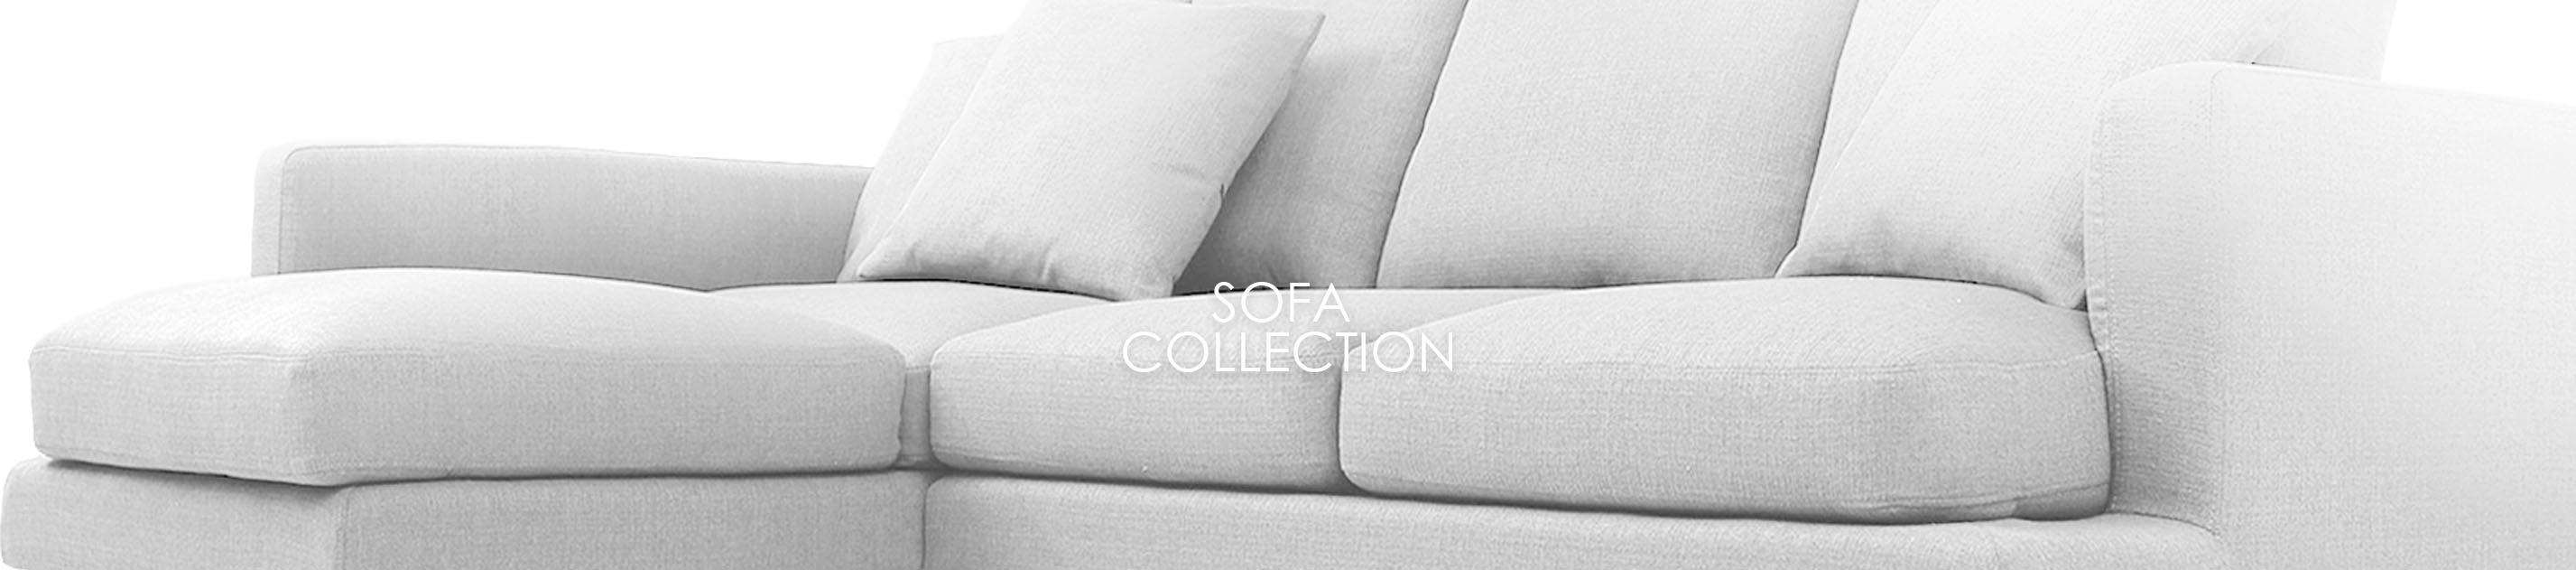 Mini Sofa Hong Kong Sofas Hong Kong Buy Sofa Online At Stockroom Furniture Hong Kong